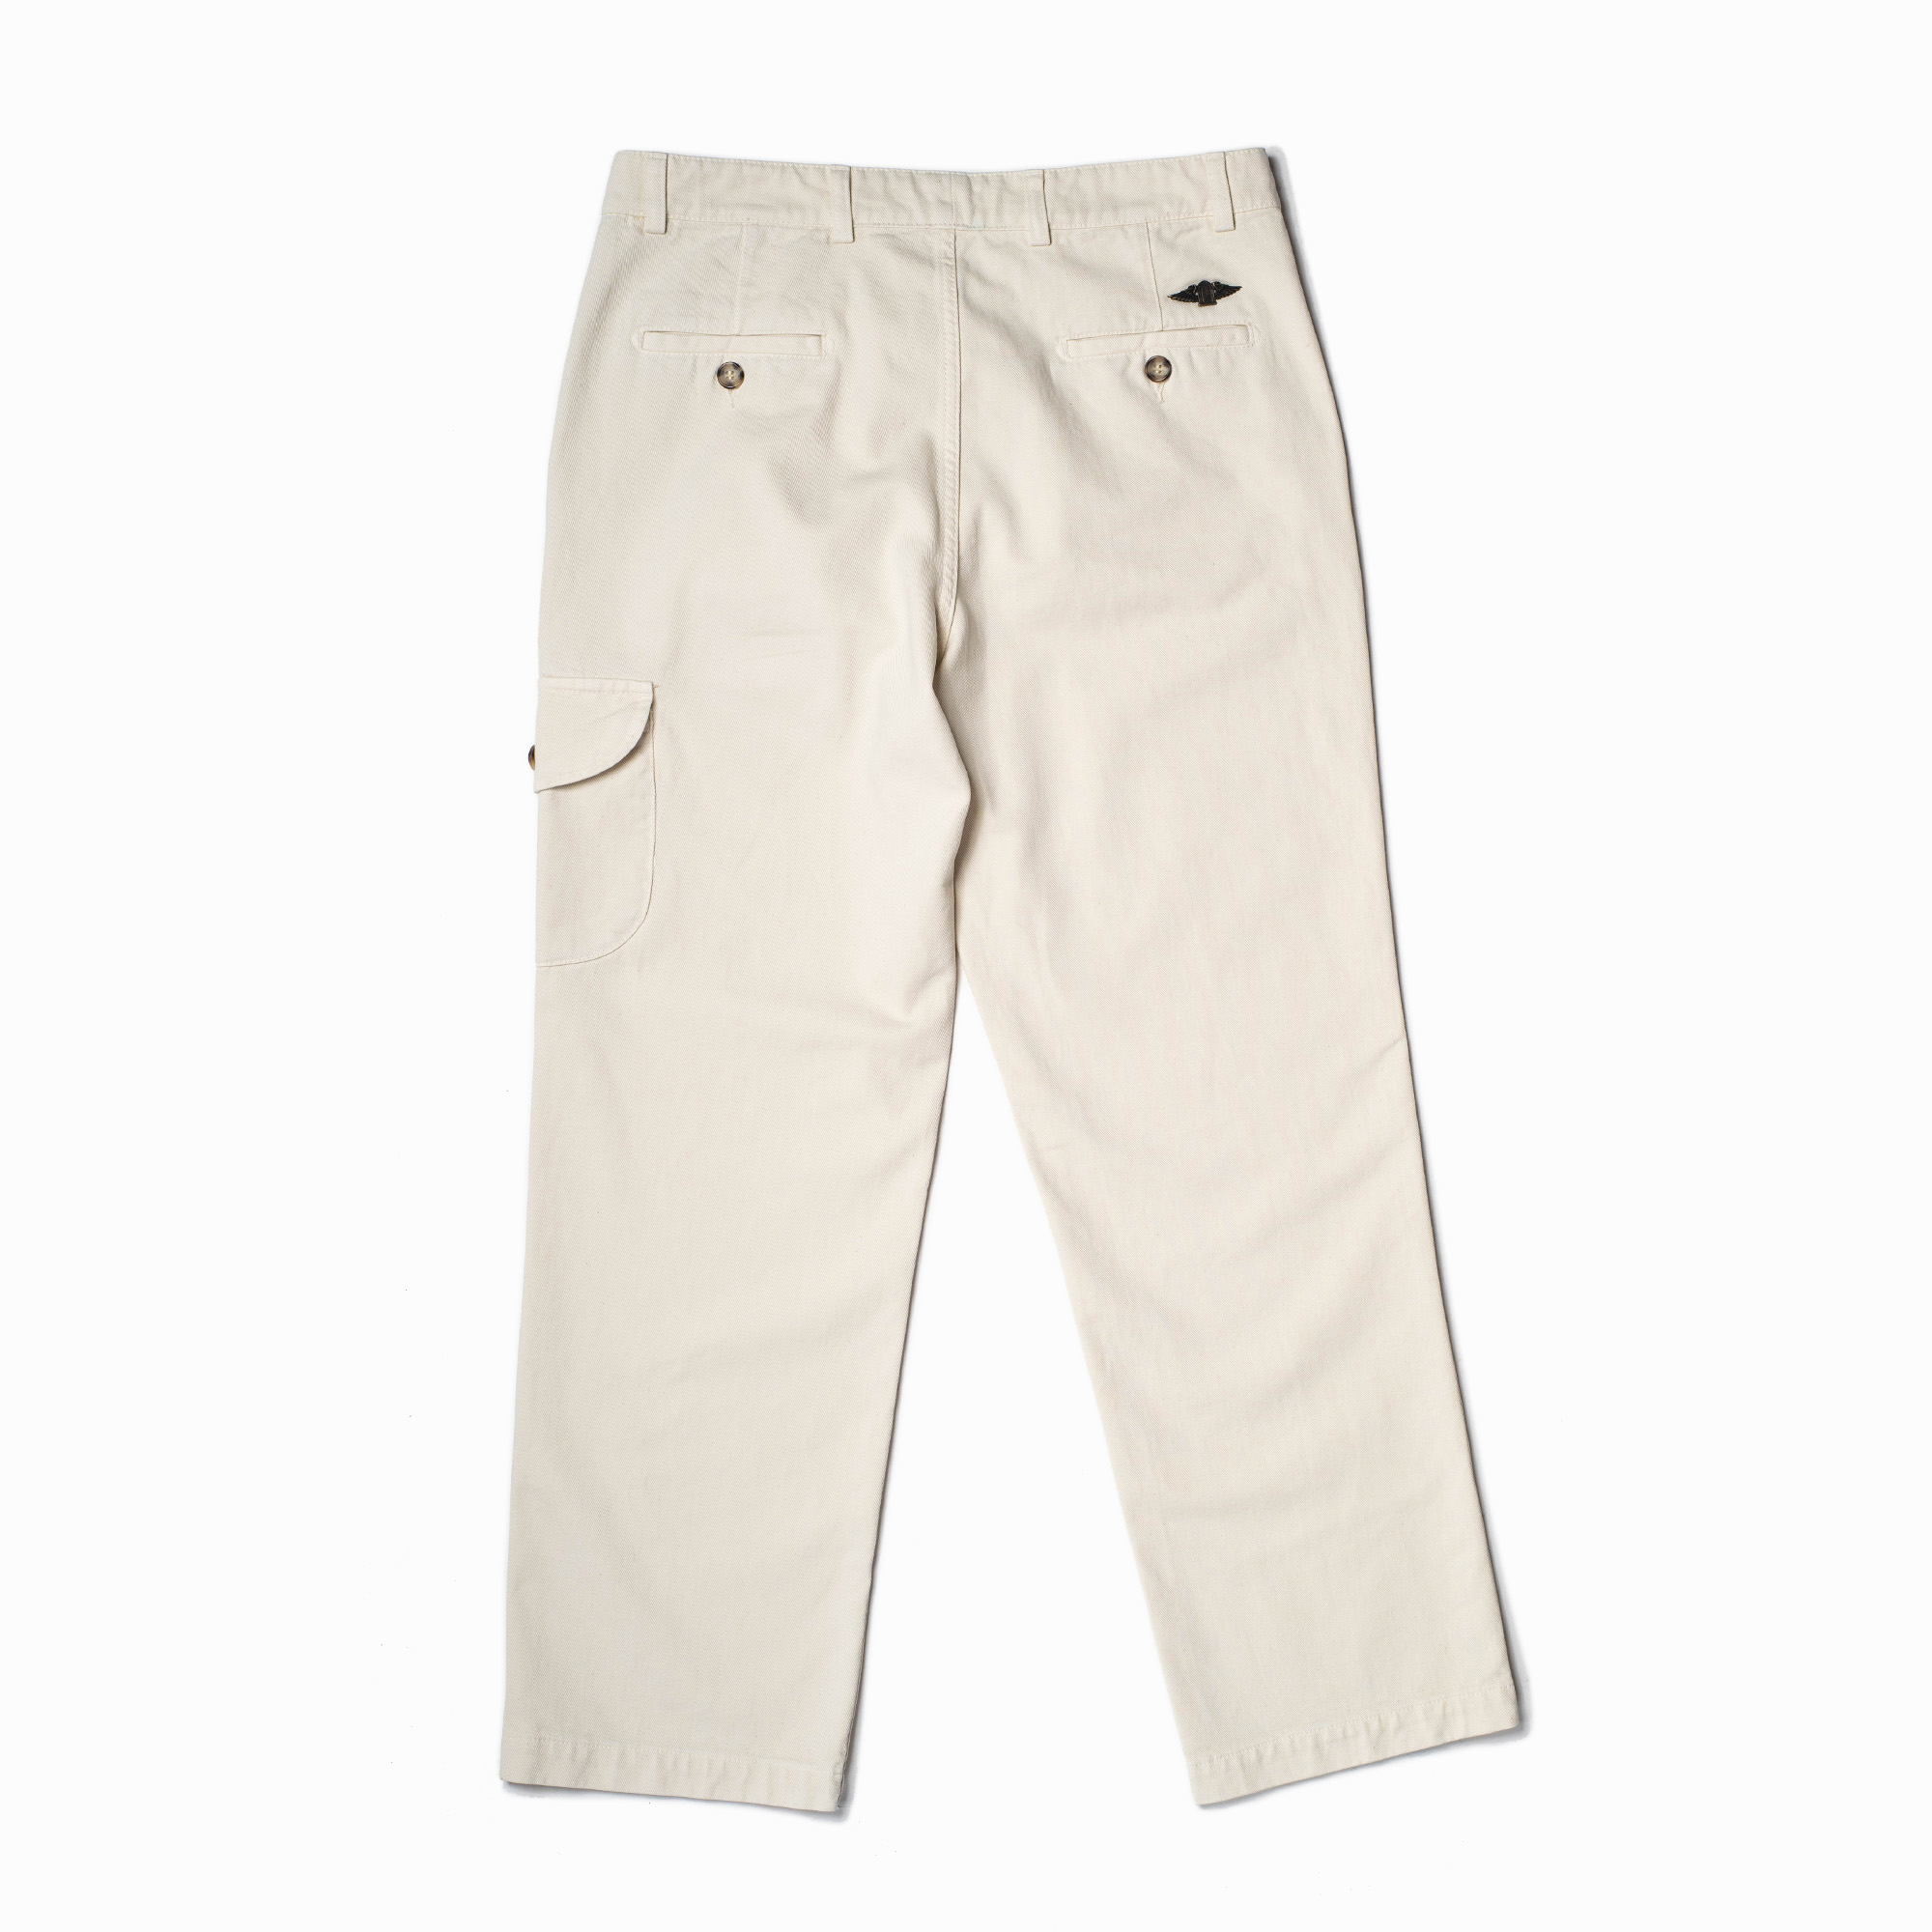 shangri-la-heritage-explorator-white-cotton-twill-pants-still-life-back